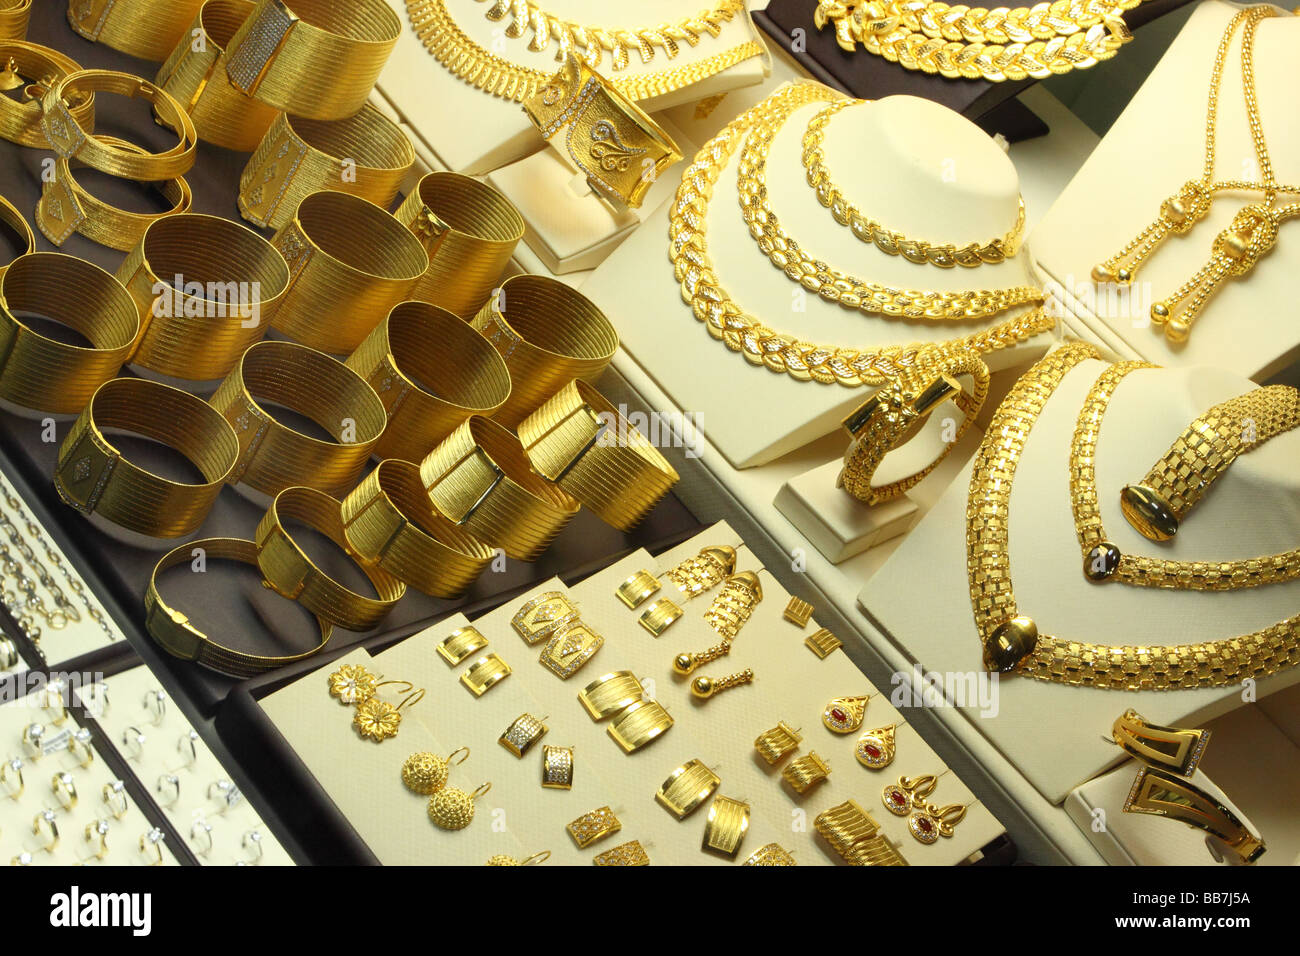 Gold Jewelry From Istanbul The Best Jewelry 2017